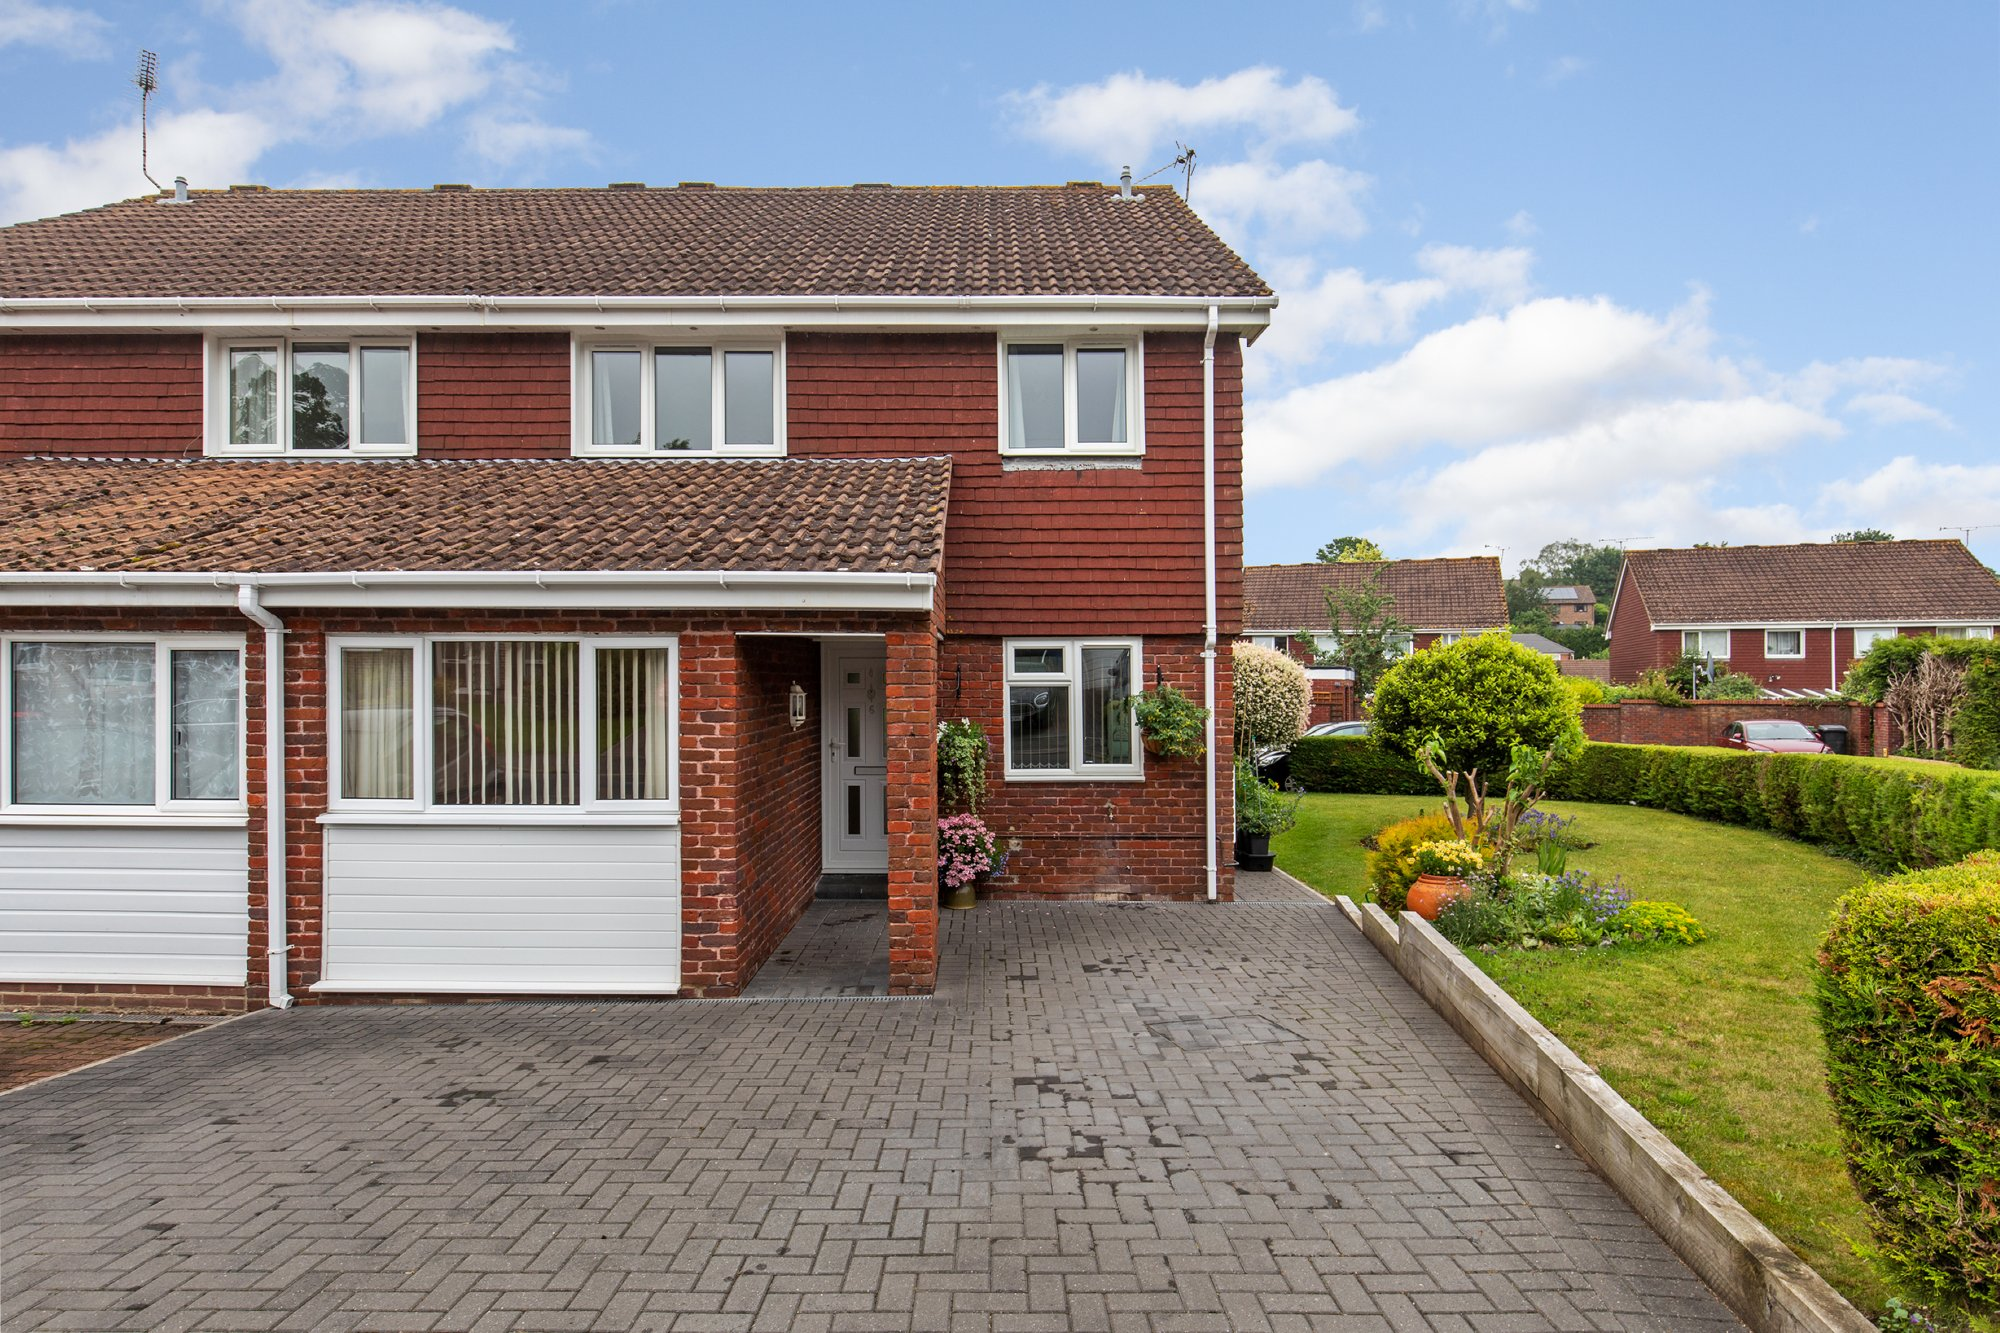 Sycamore Drive, Kings Worthy, Winchester, SO23